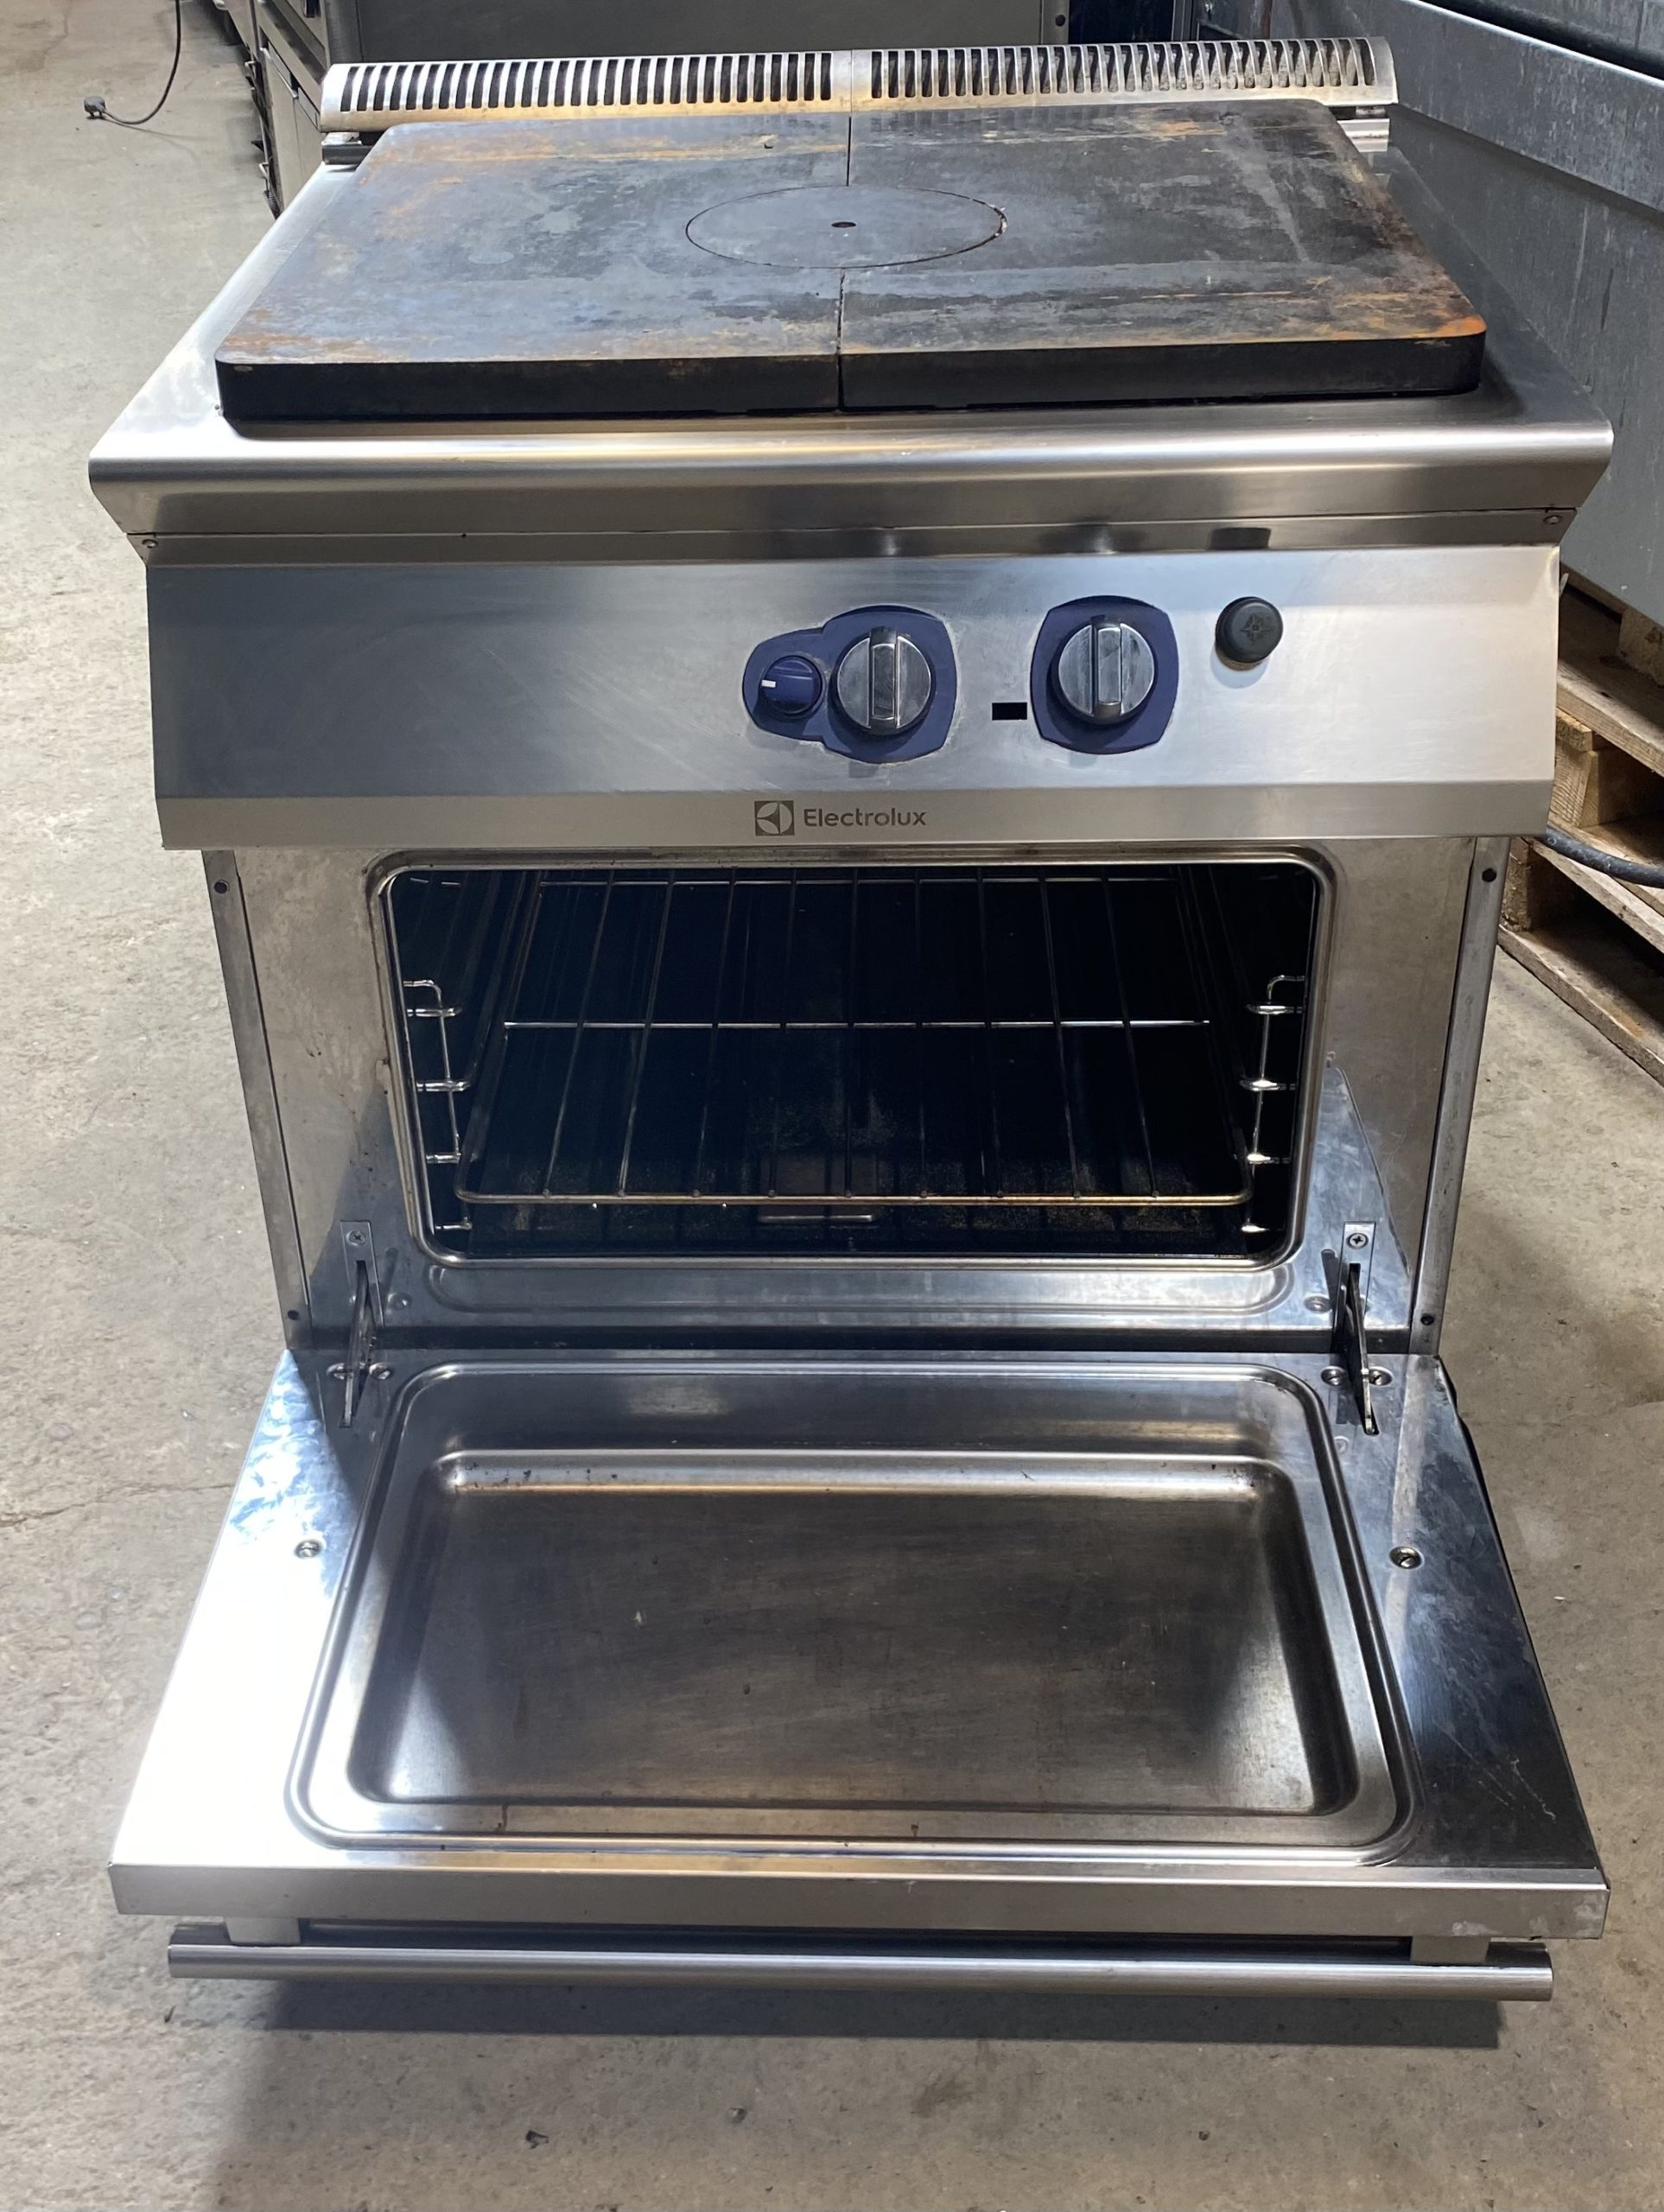 ELECTROLUX Gas Solid Top Range with Oven